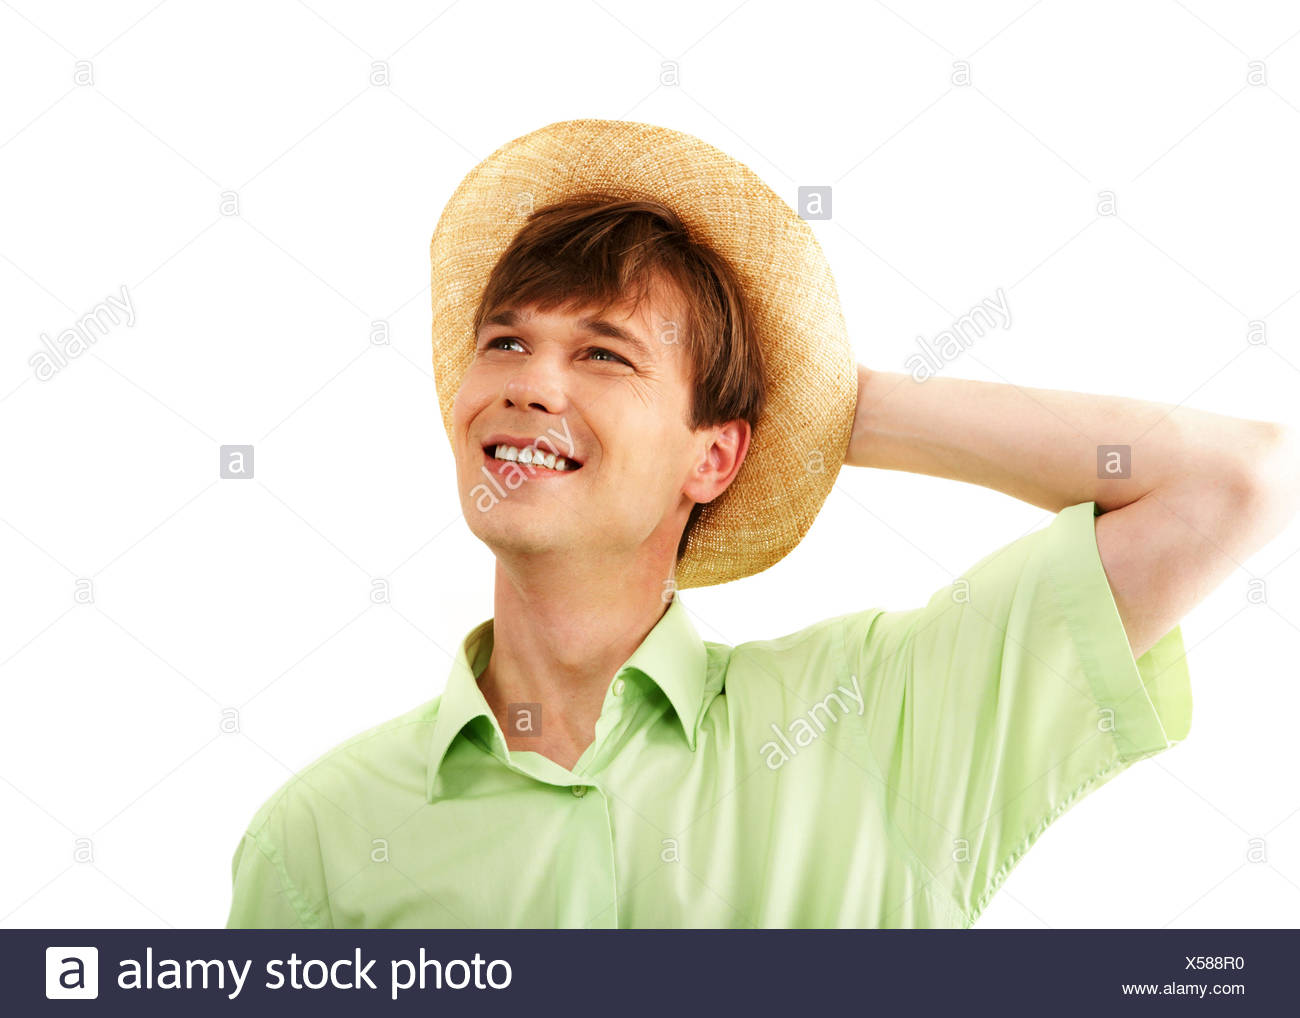 guy, humans, human beings, people, folk, persons, human, human being, laugh, - Stock Image